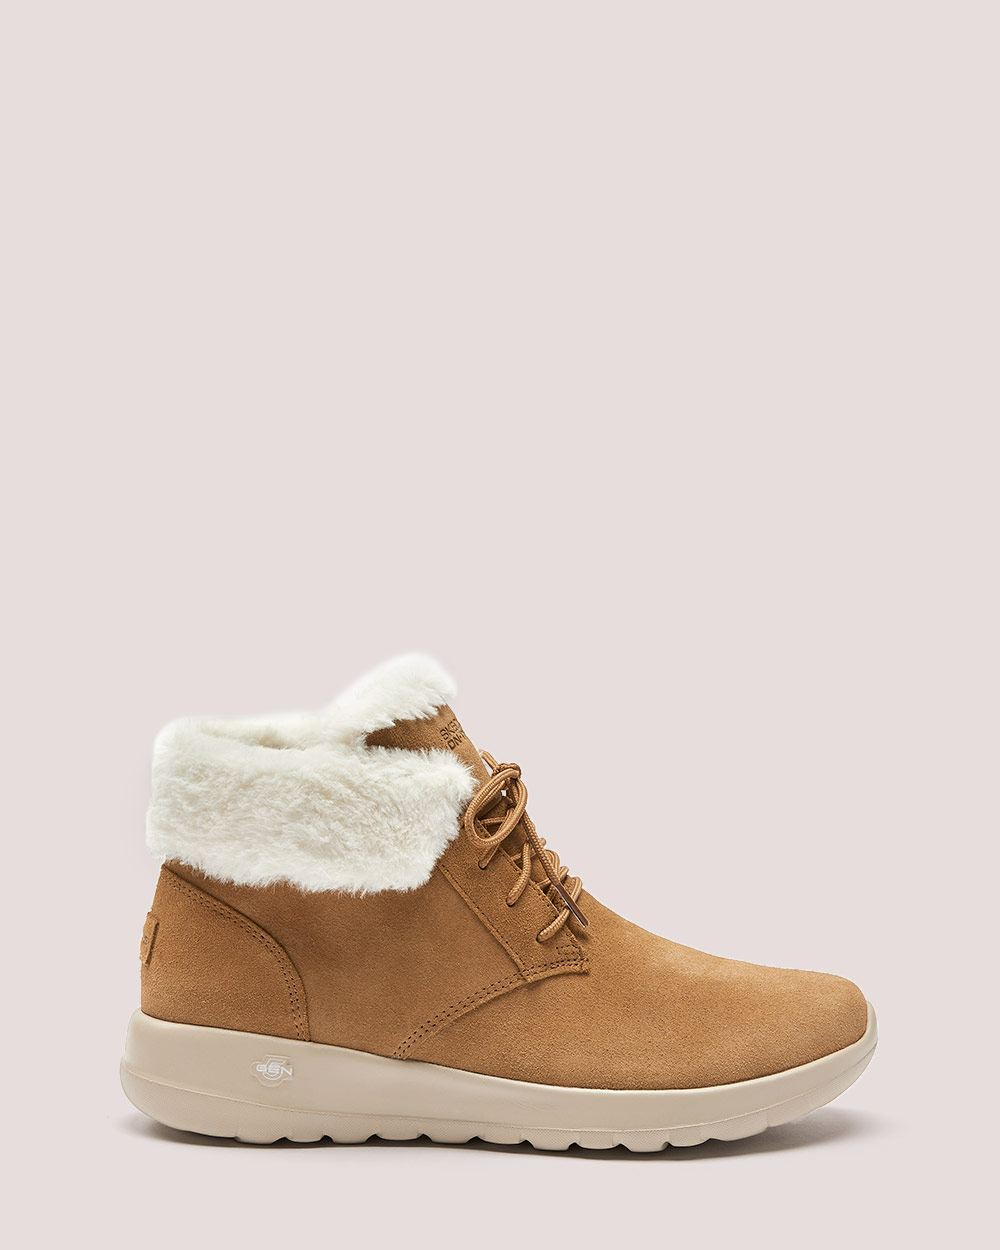 Wide Width Lace-Up Bootie with Faux-Fur - Sketchers ($95 CAD)